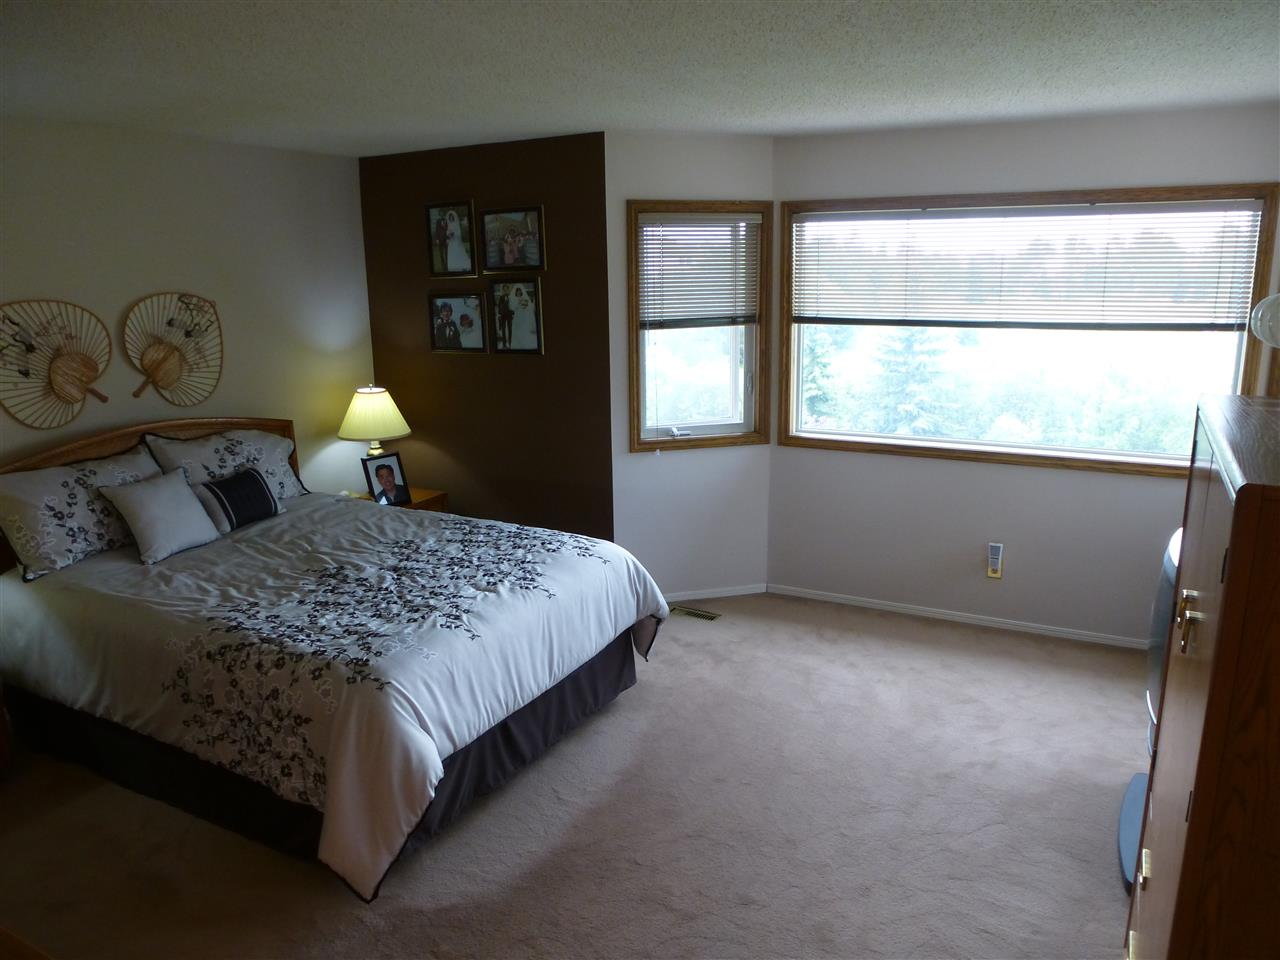 Photo 21: 315 ORMSBY Road in Edmonton: Zone 20 House for sale : MLS(r) # E4059577